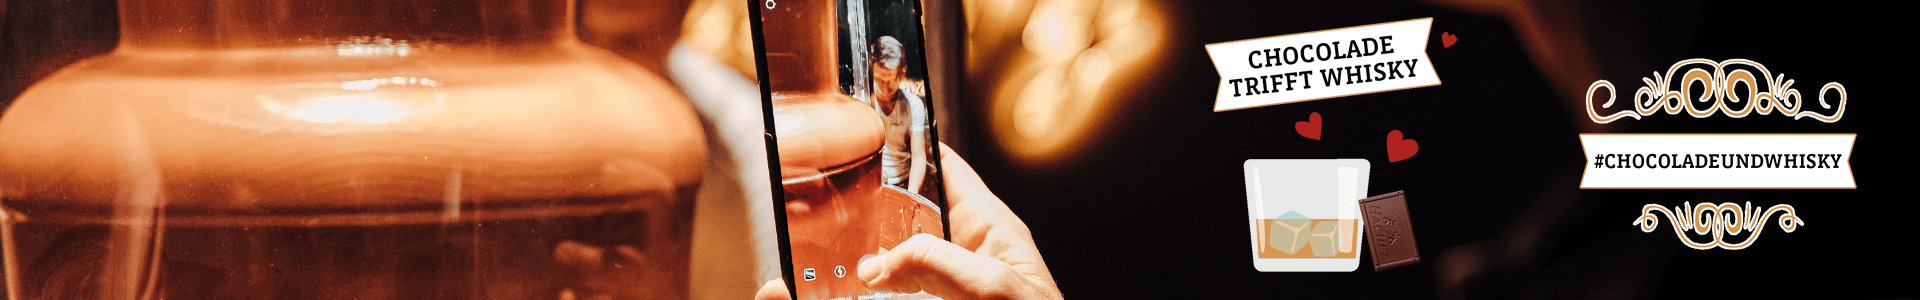 Chocolate meets Whisky – ein genussvolles Influencer-Event mit HACHEZ in Hamburg